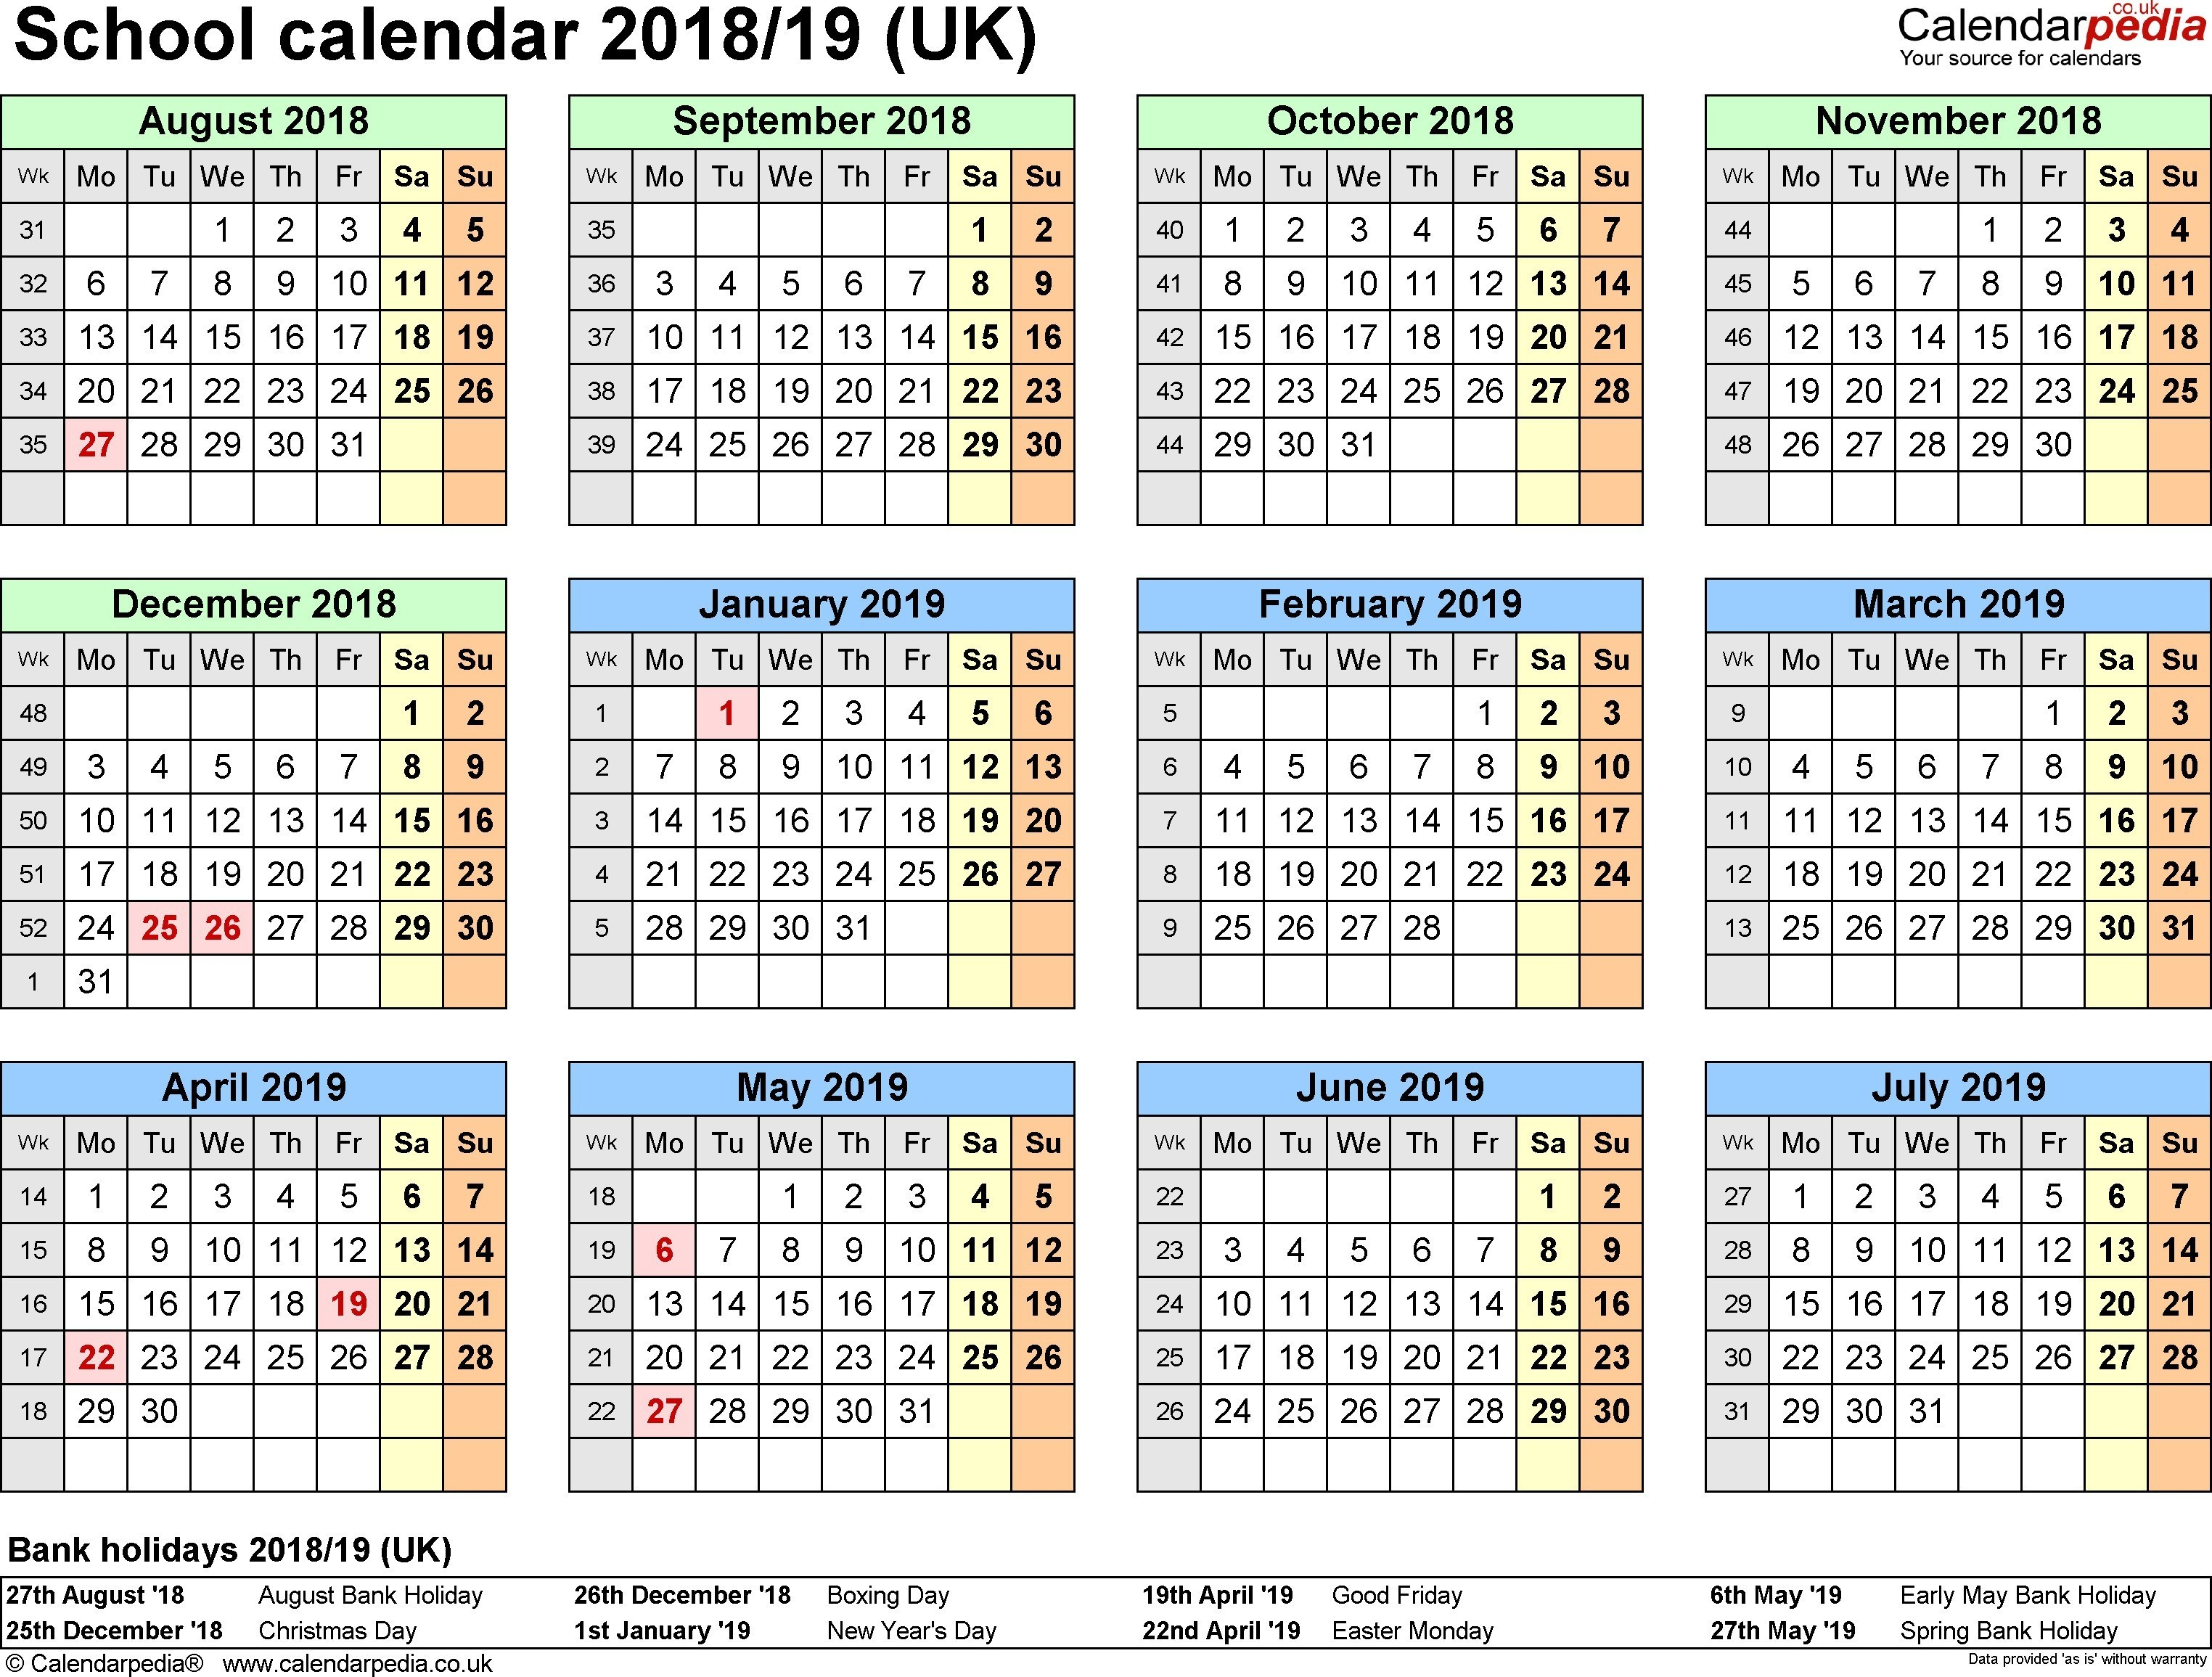 March 2018 Calendar Kalnirnay Más Recientemente Liberado August 2106 Calendar Lara Expolicenciaslatam Of March 2018 Calendar Kalnirnay Más Arriba-a-fecha March Calendar 2015 Blank September 2016 Calendar Free to and Print